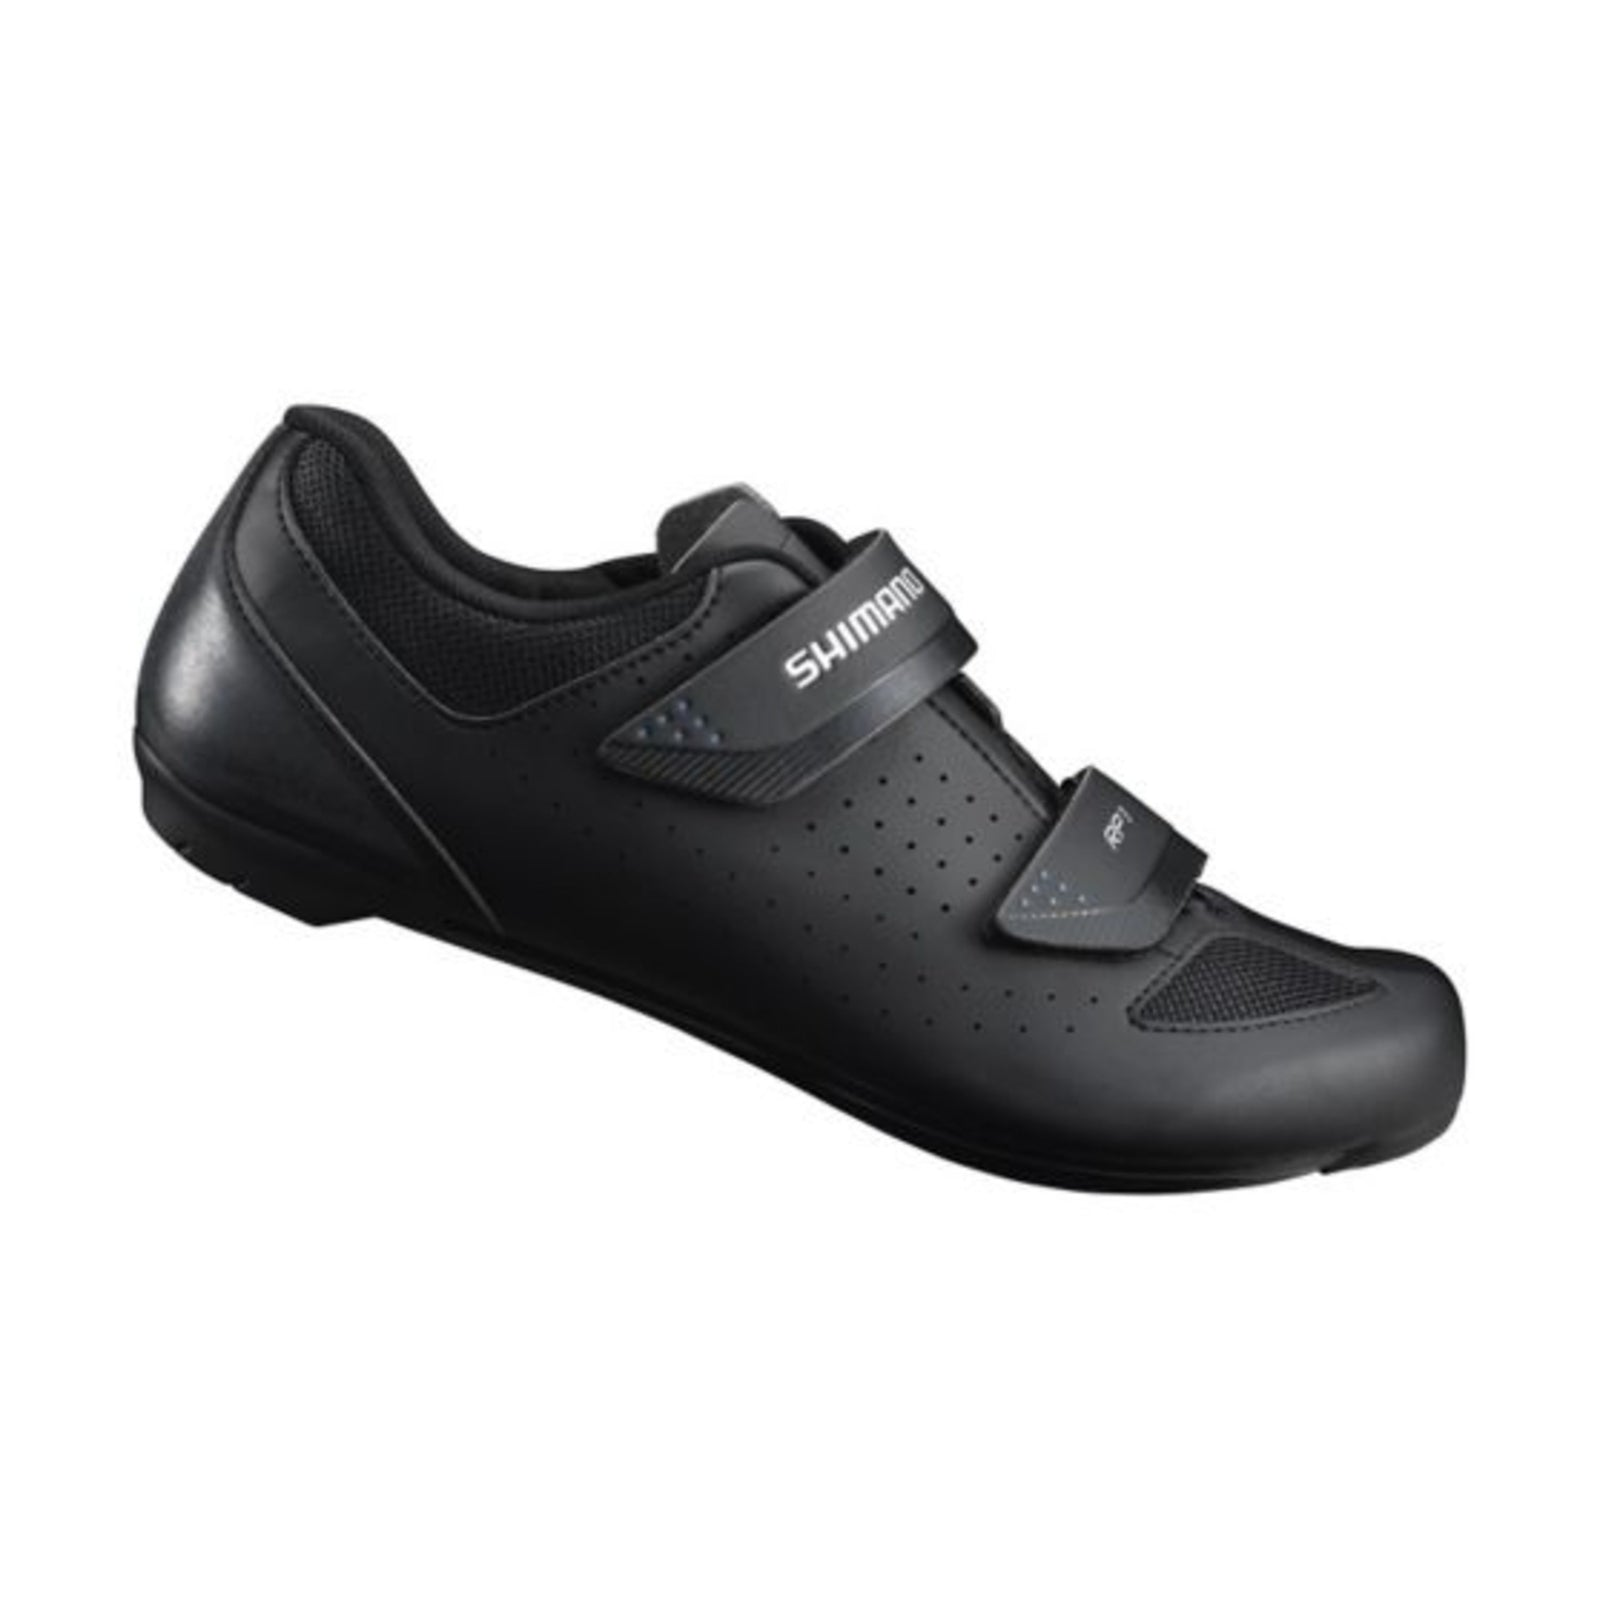 SH-RP100 Road Shoes Black